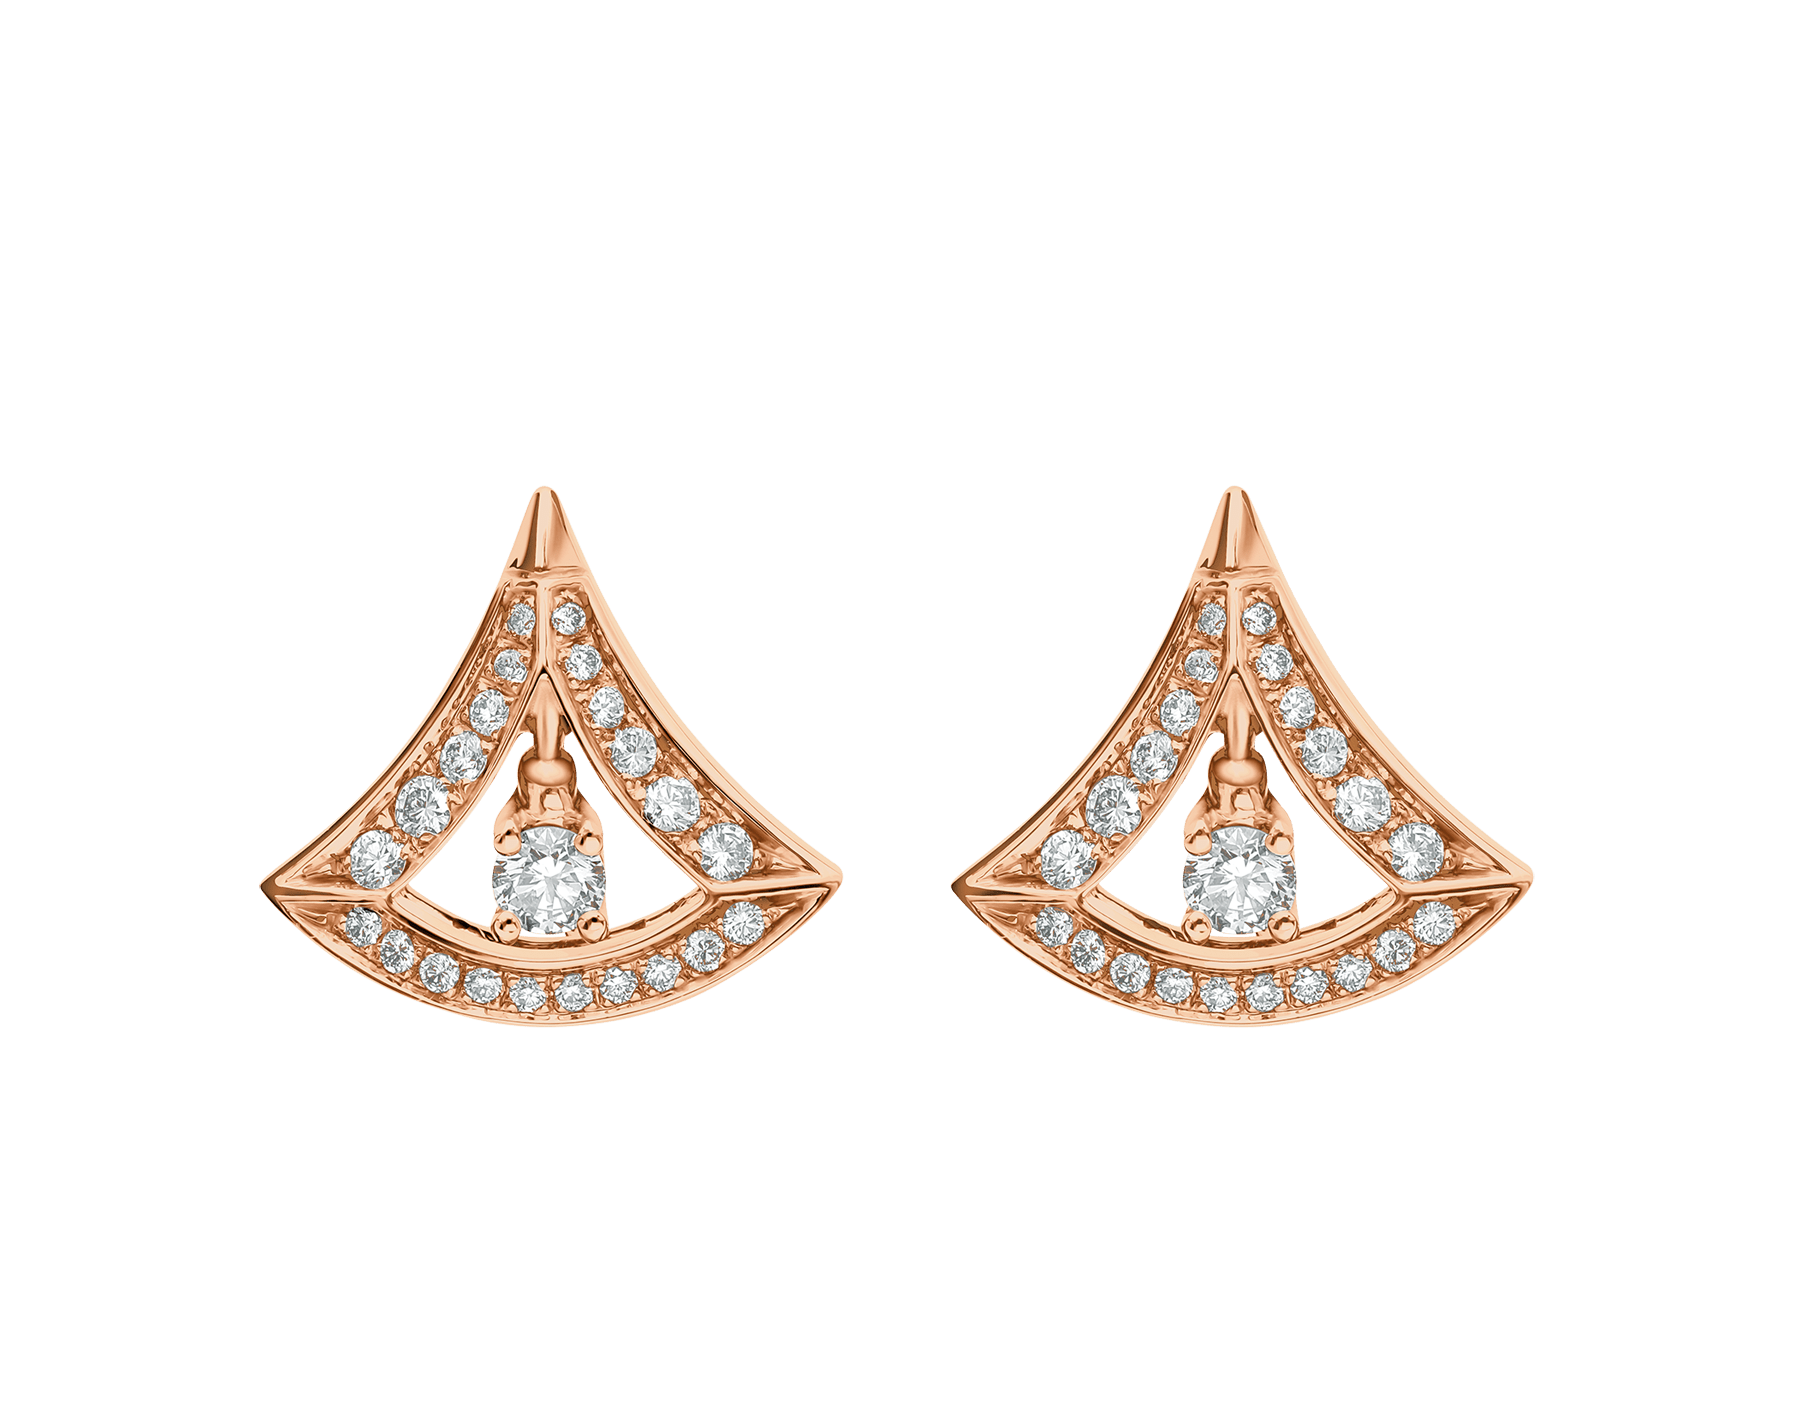 DIVAS' DREAM 18 kt rose gold earrings, set with round brilliant-cut diamonds and pavé diamonds. 356450 image 1